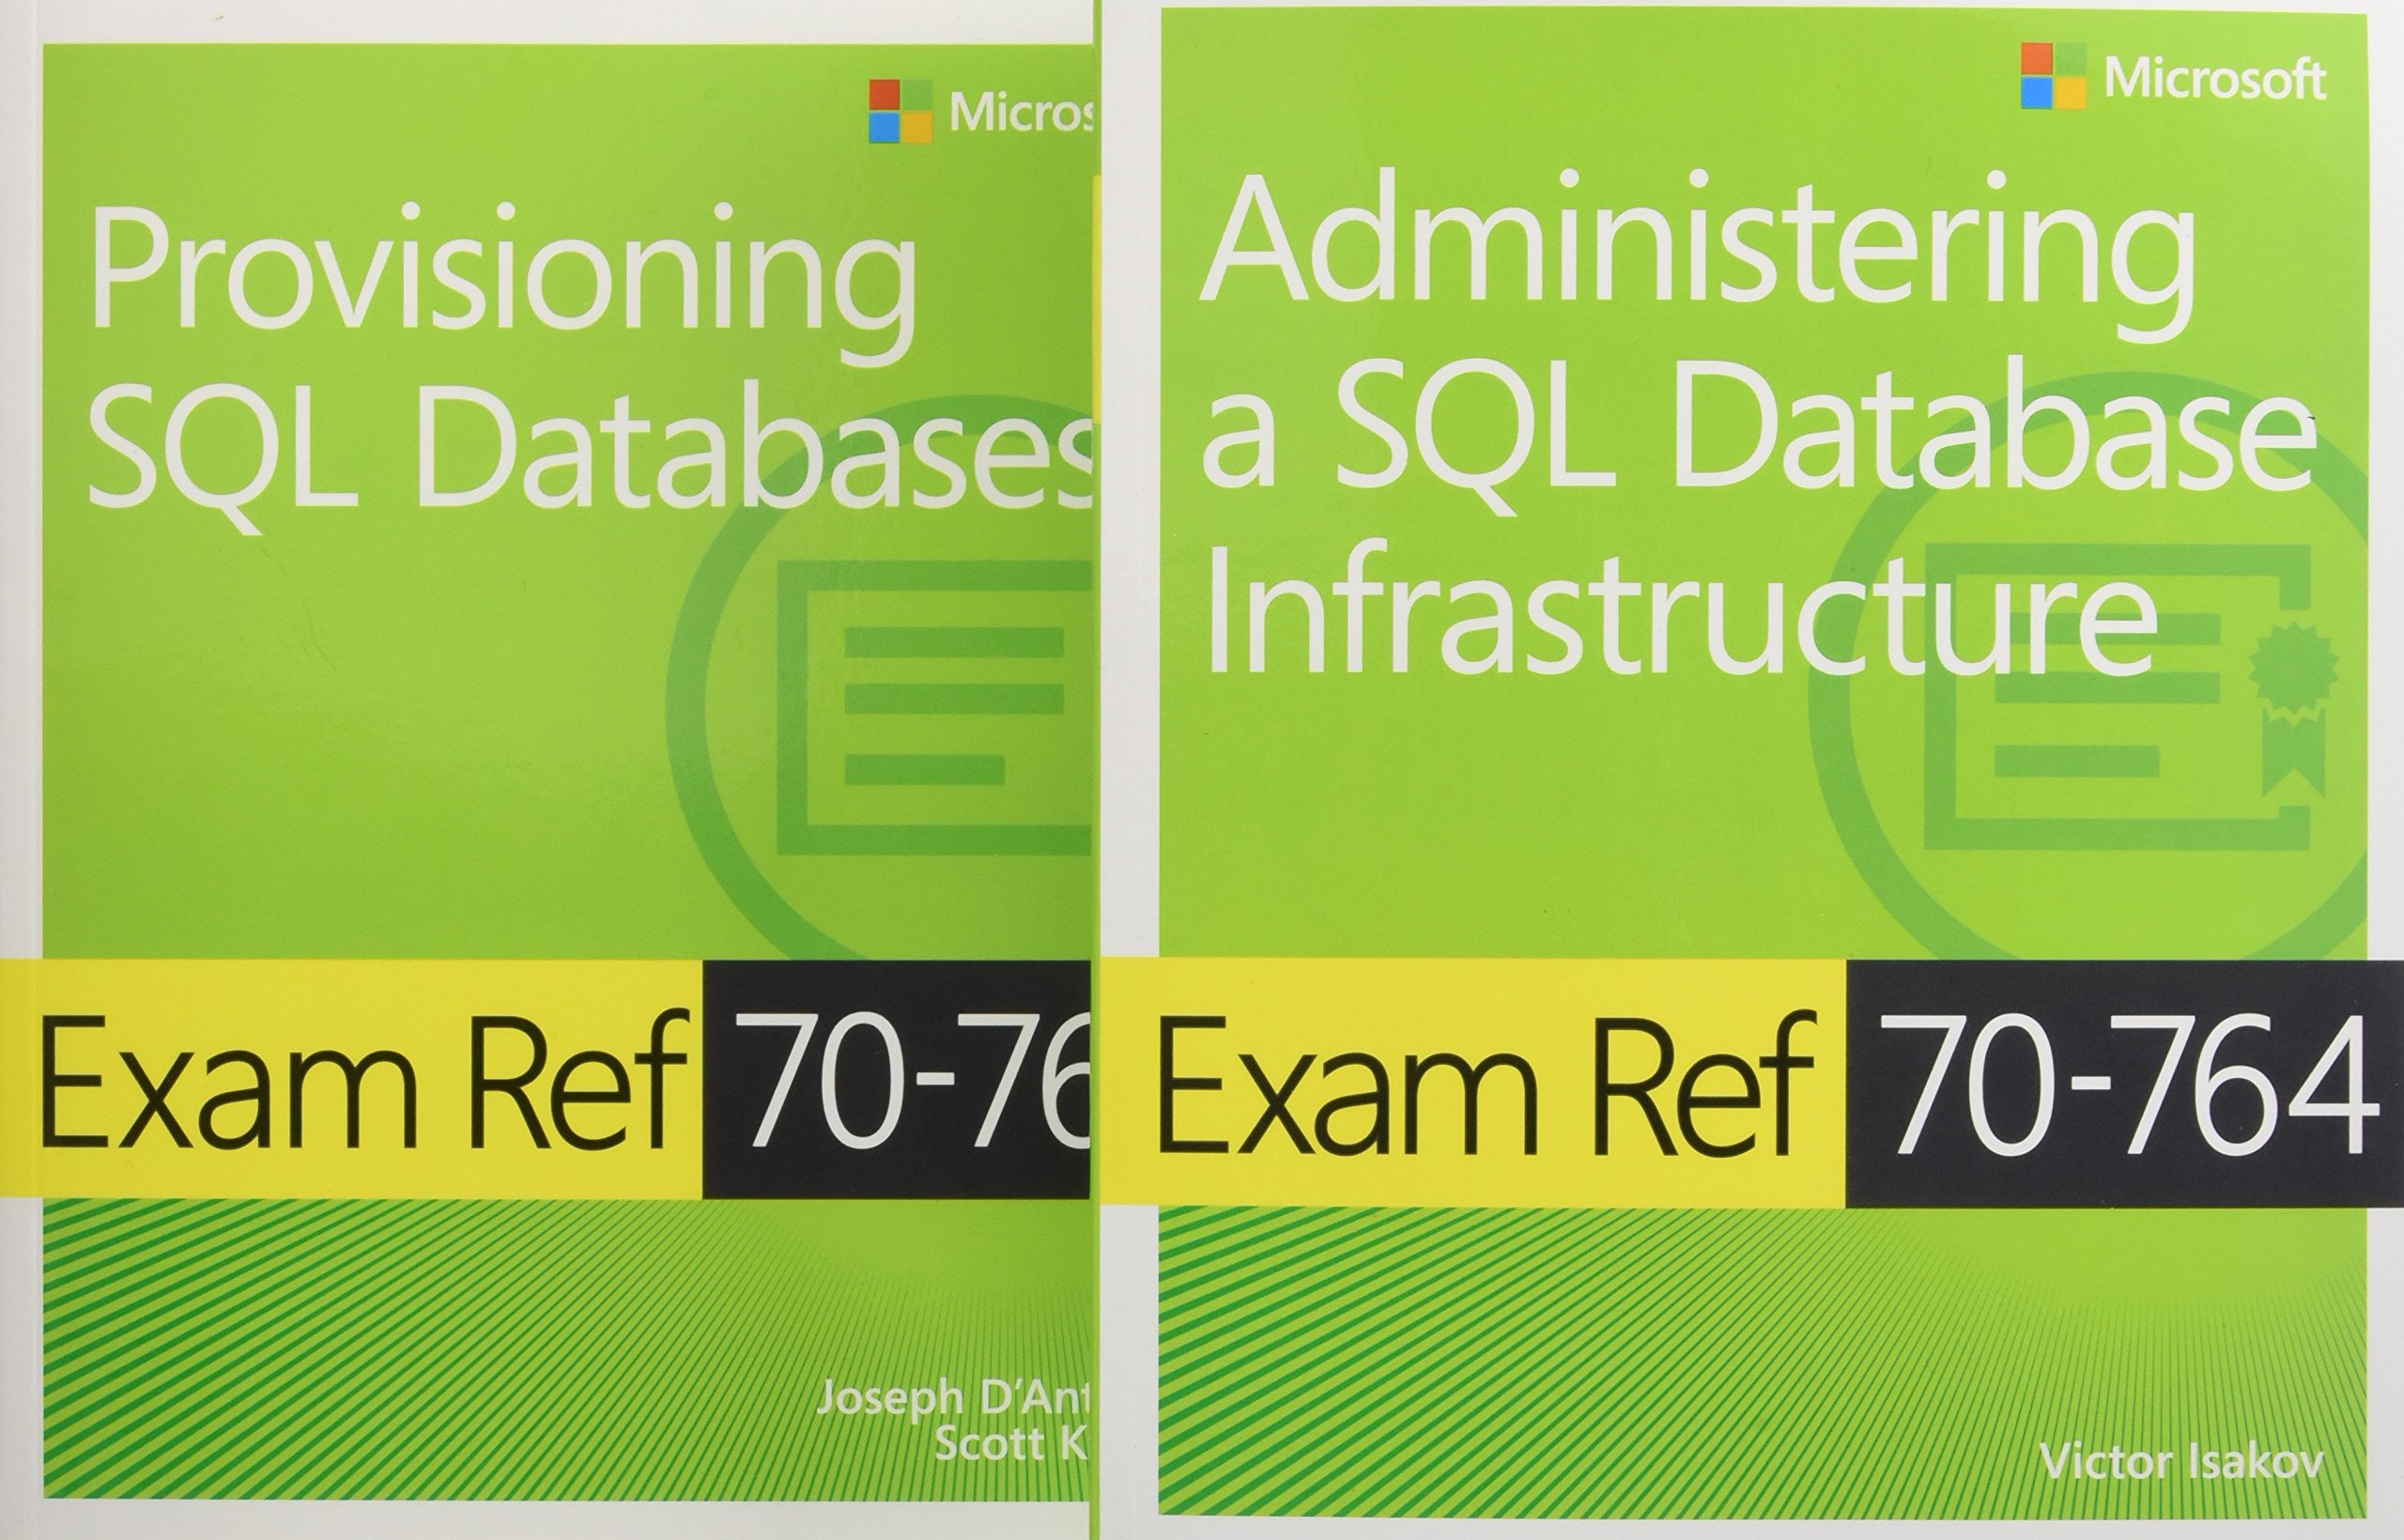 Image OfAdministering A SQL Database Infrastructure Exam Ref 70-764 + Provisioning SQL Databases Exam Ref 70-765